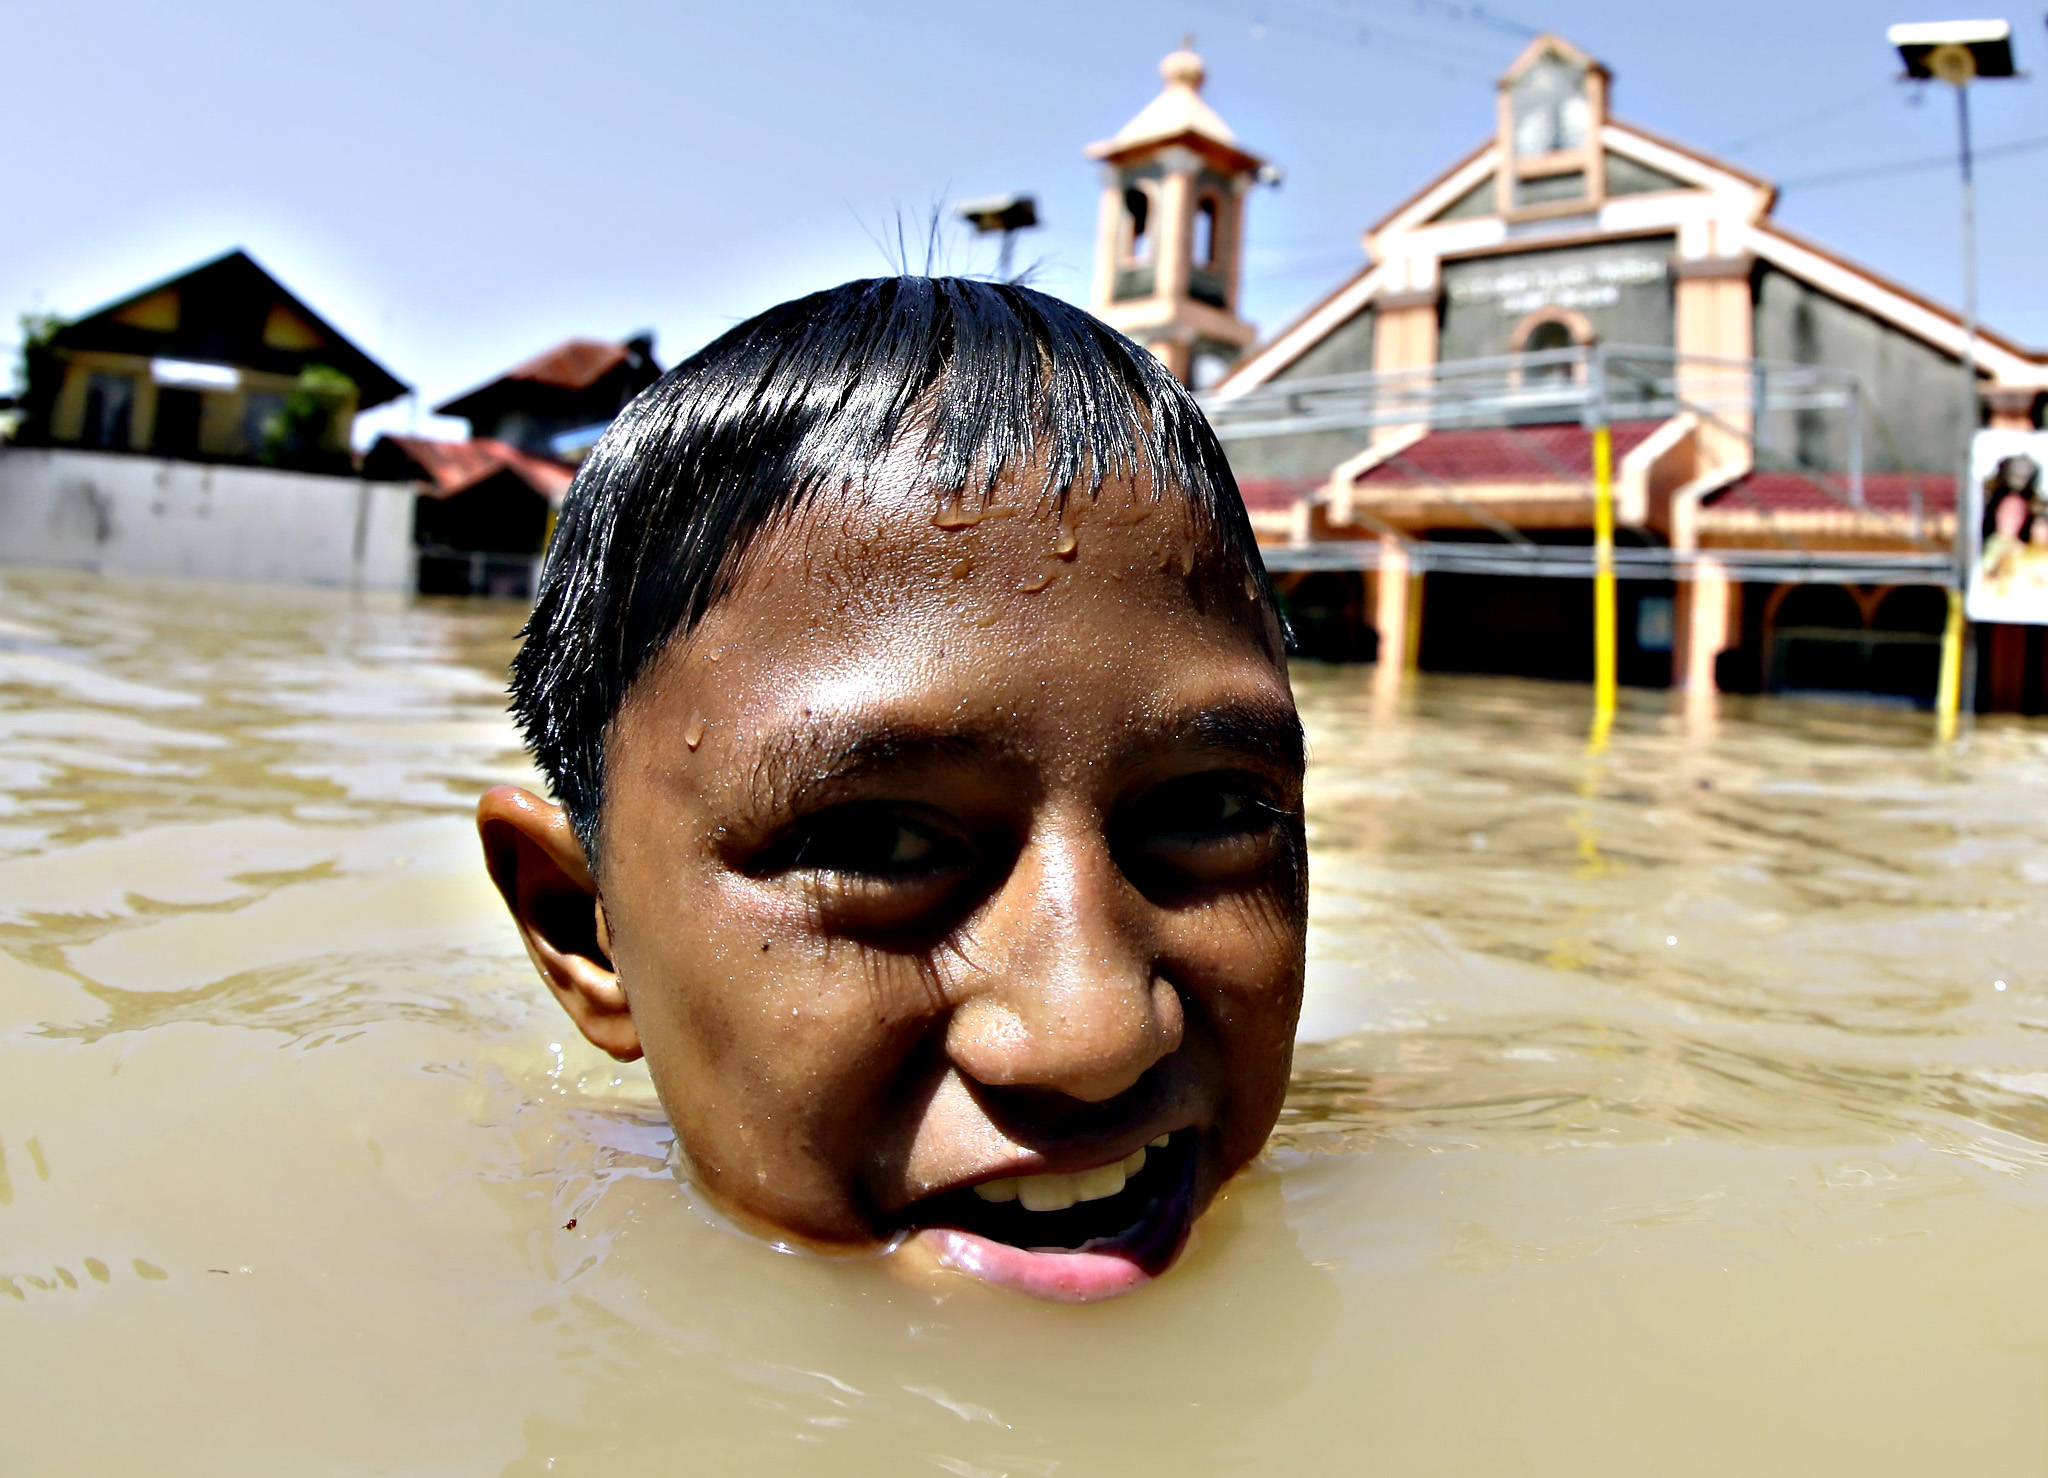 A Filipino boy wades next to a church at the flood-hit town of Calumpit, Bulacan province, northern Manila, Philippines, 21 October 2015. The death toll in a powerful storm that battered the northern Philippines has risen to 35, with nearly half a million people displaced, disaster relief officials said. Most of the fatalities either drowned in floods that reached up to the roofs in some areas, were buried in landslides, or hit by toppled trees or collapsed walls caused by typhoon Koppu. Koppu, which flooded rice-growing provinces, caused damage to agriculture and infrastructure worth at least 6.56 billion pesos (142.60 million dollars), the national disaster relief agency said